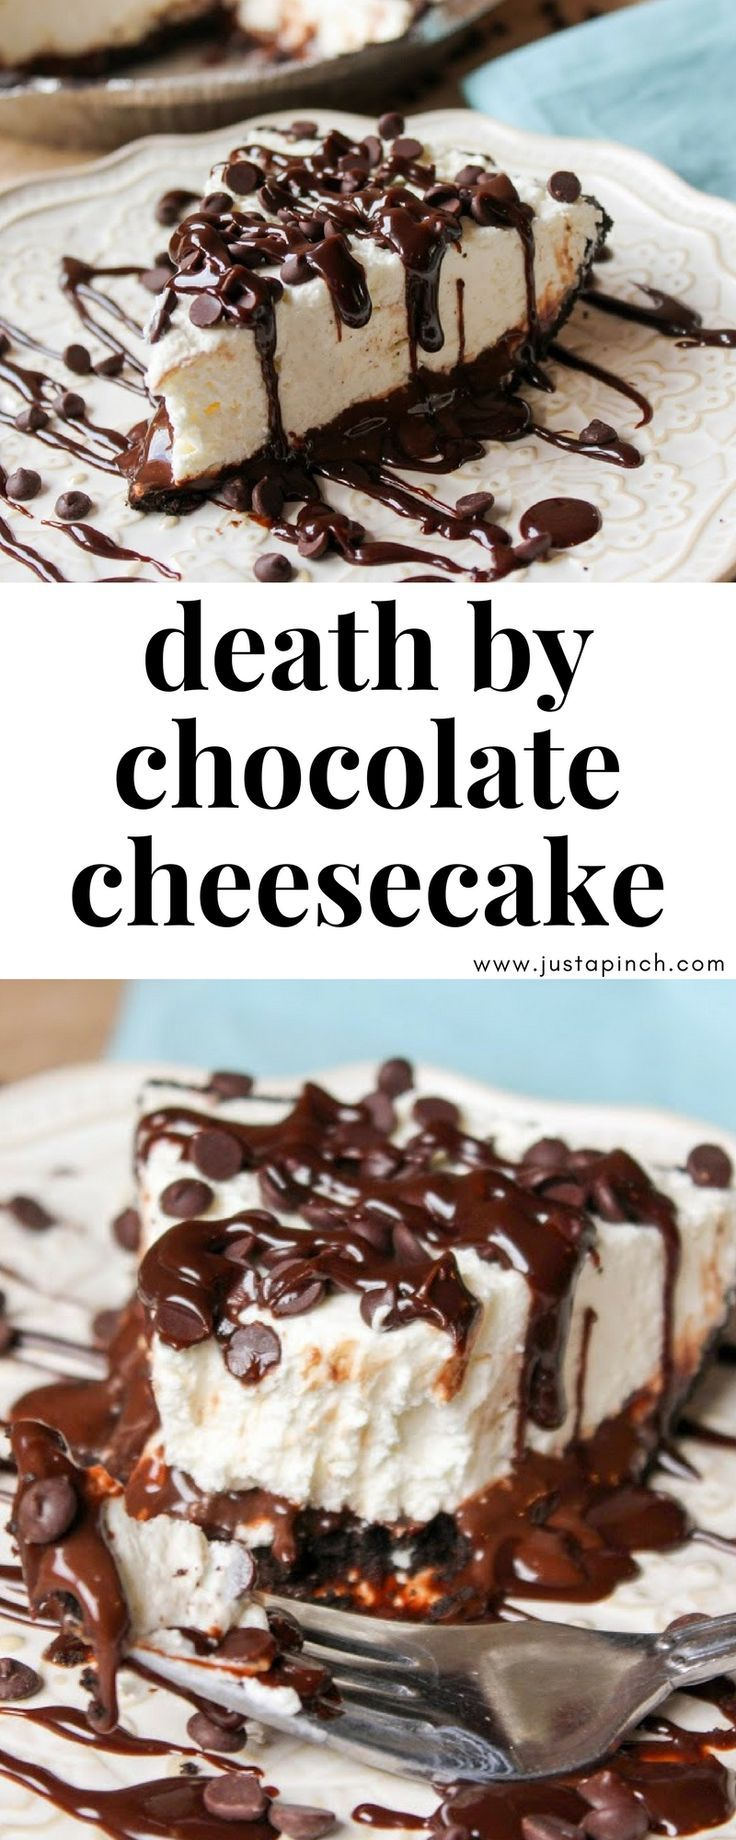 No bake cheesecake recipe that is SO GOOD! Check out this death by chocolate cheesecake recipe on Just A Pinch! #dessert #dessertrecipes #cheesecake #chocolate